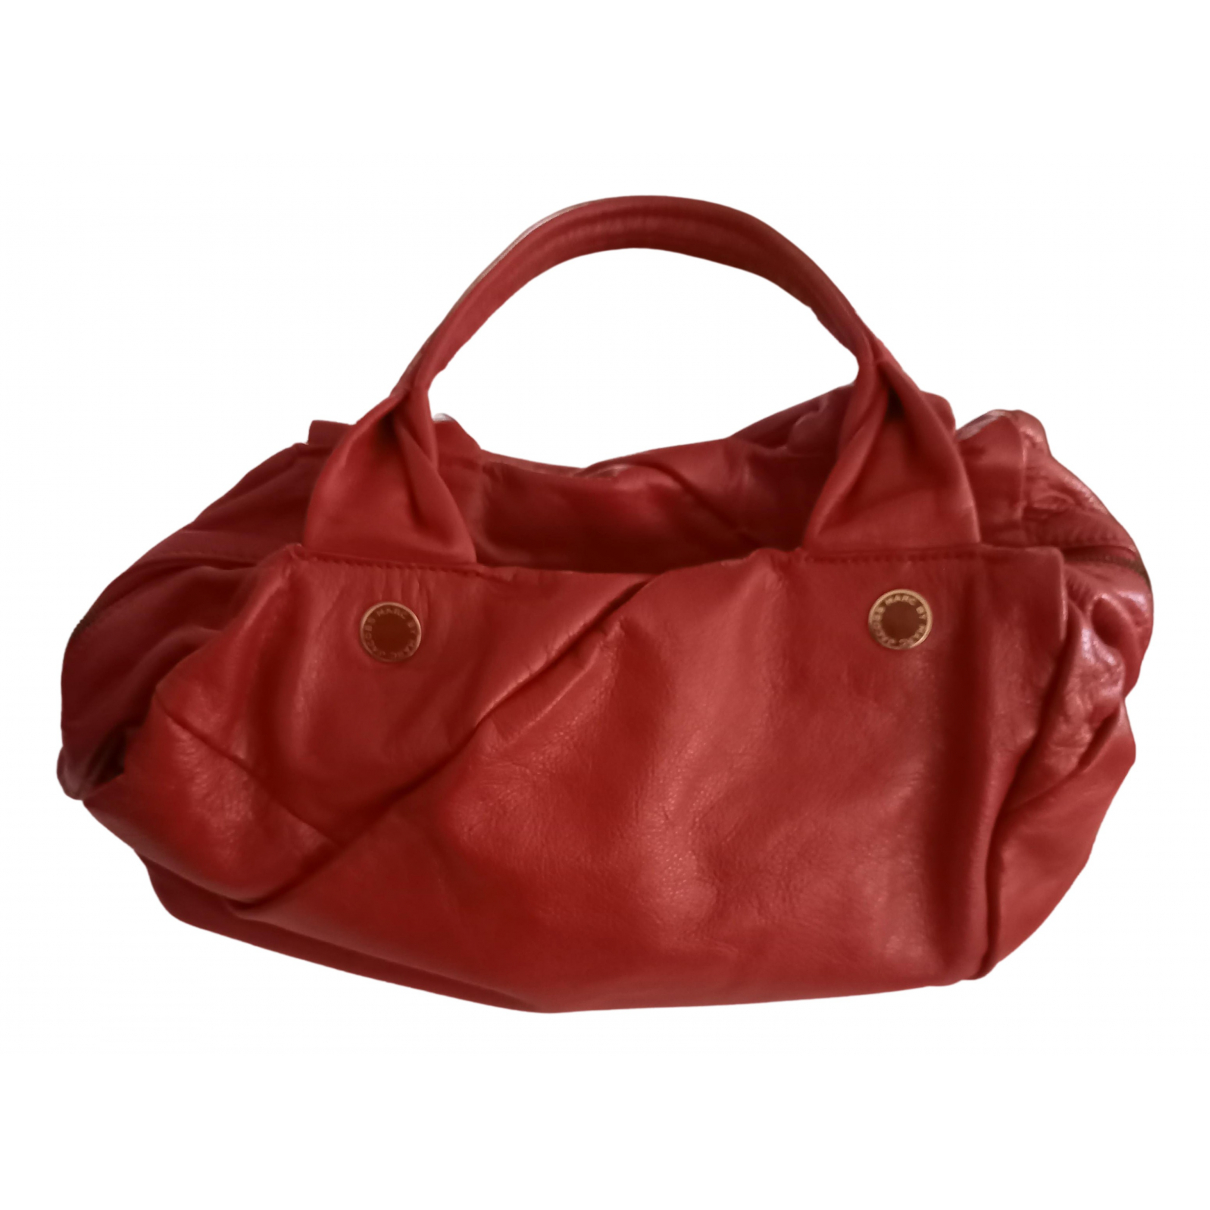 Marc By Marc Jacobs N Red Leather handbag for Women N